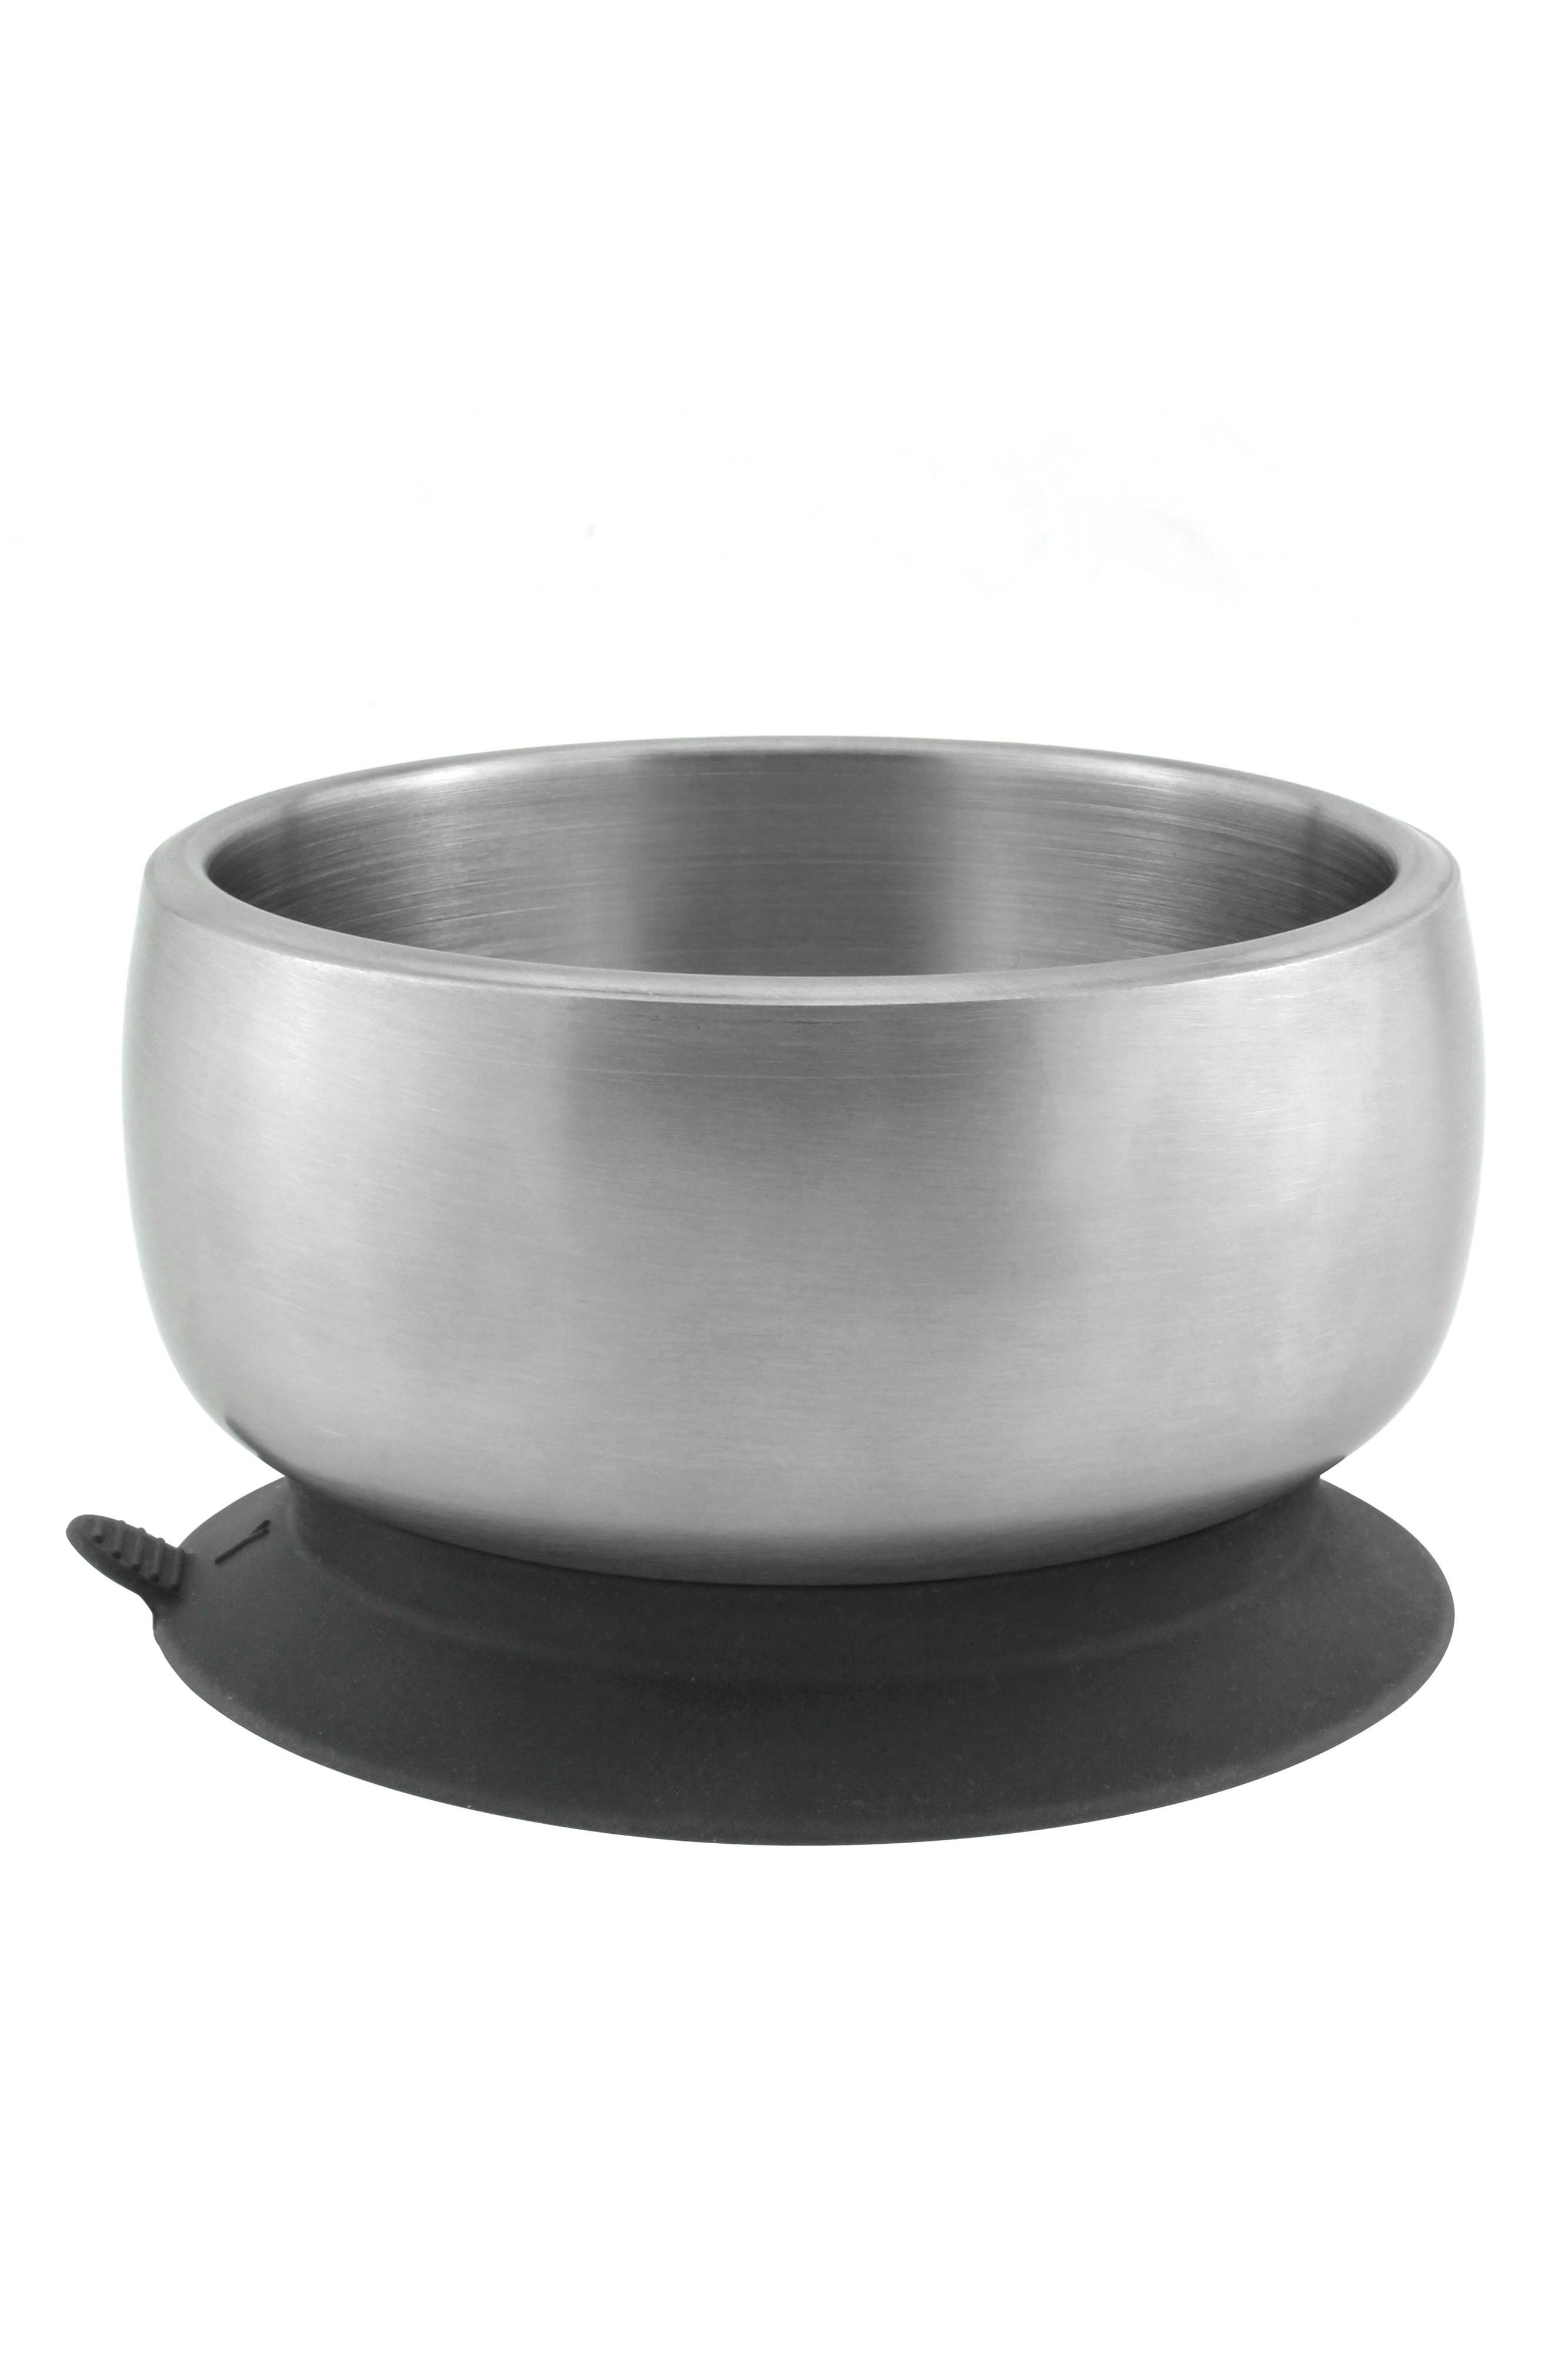 Stainless Steel Stay-Put Suction Bowl & Lid,                             Alternate thumbnail 4, color,                             BLACK